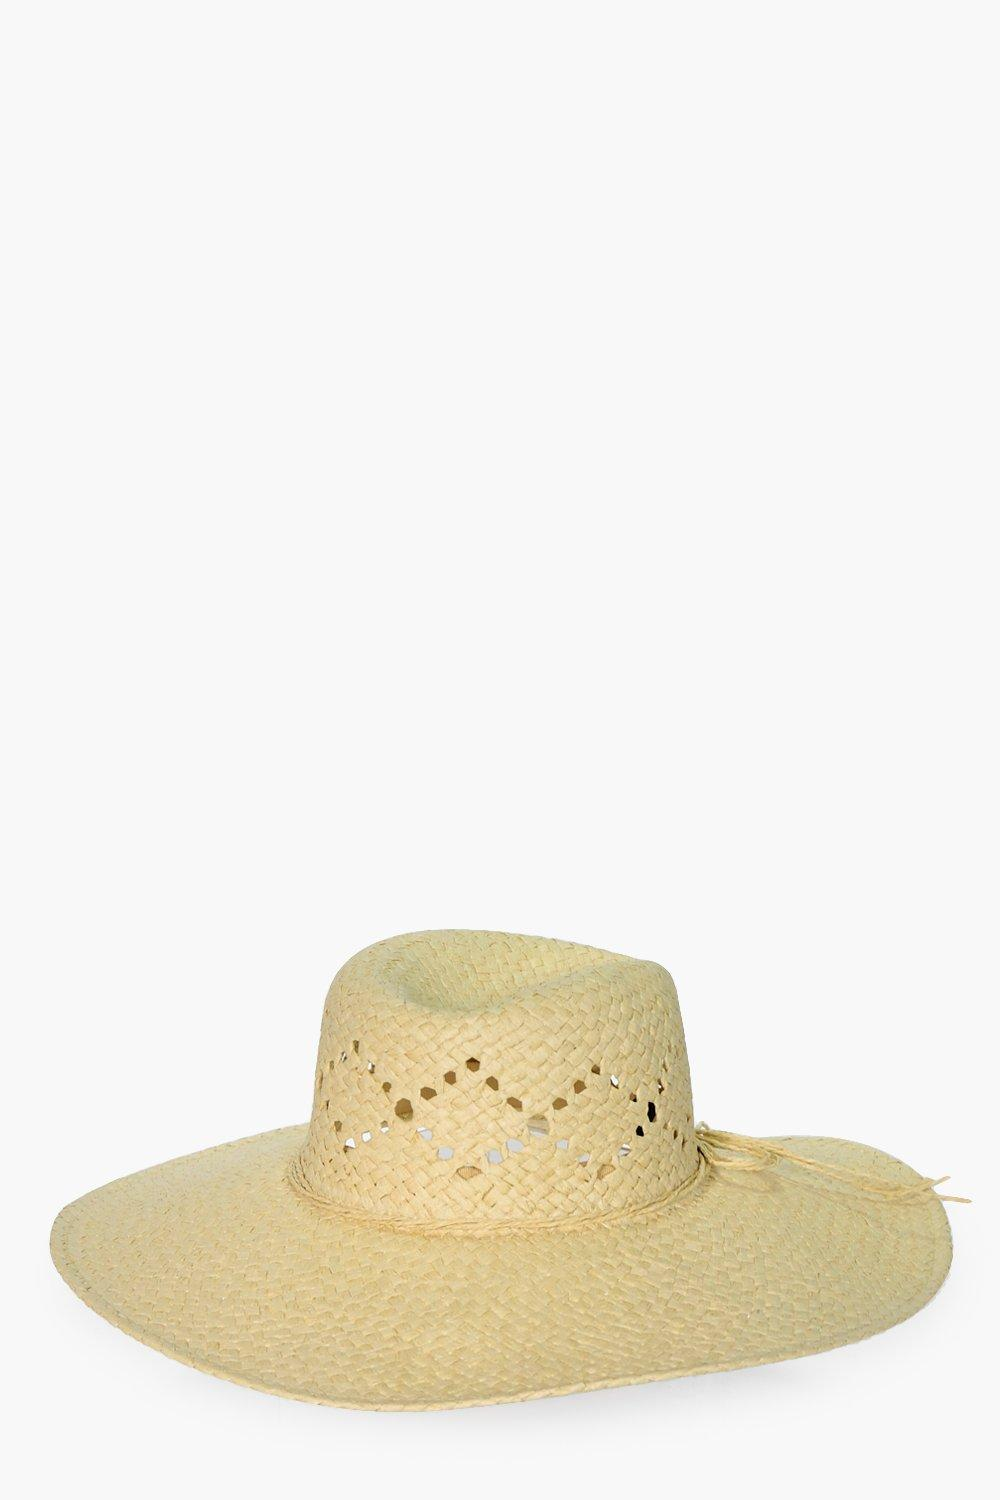 Basic Straw Trim Floppy Hat - natural - Clara Basi